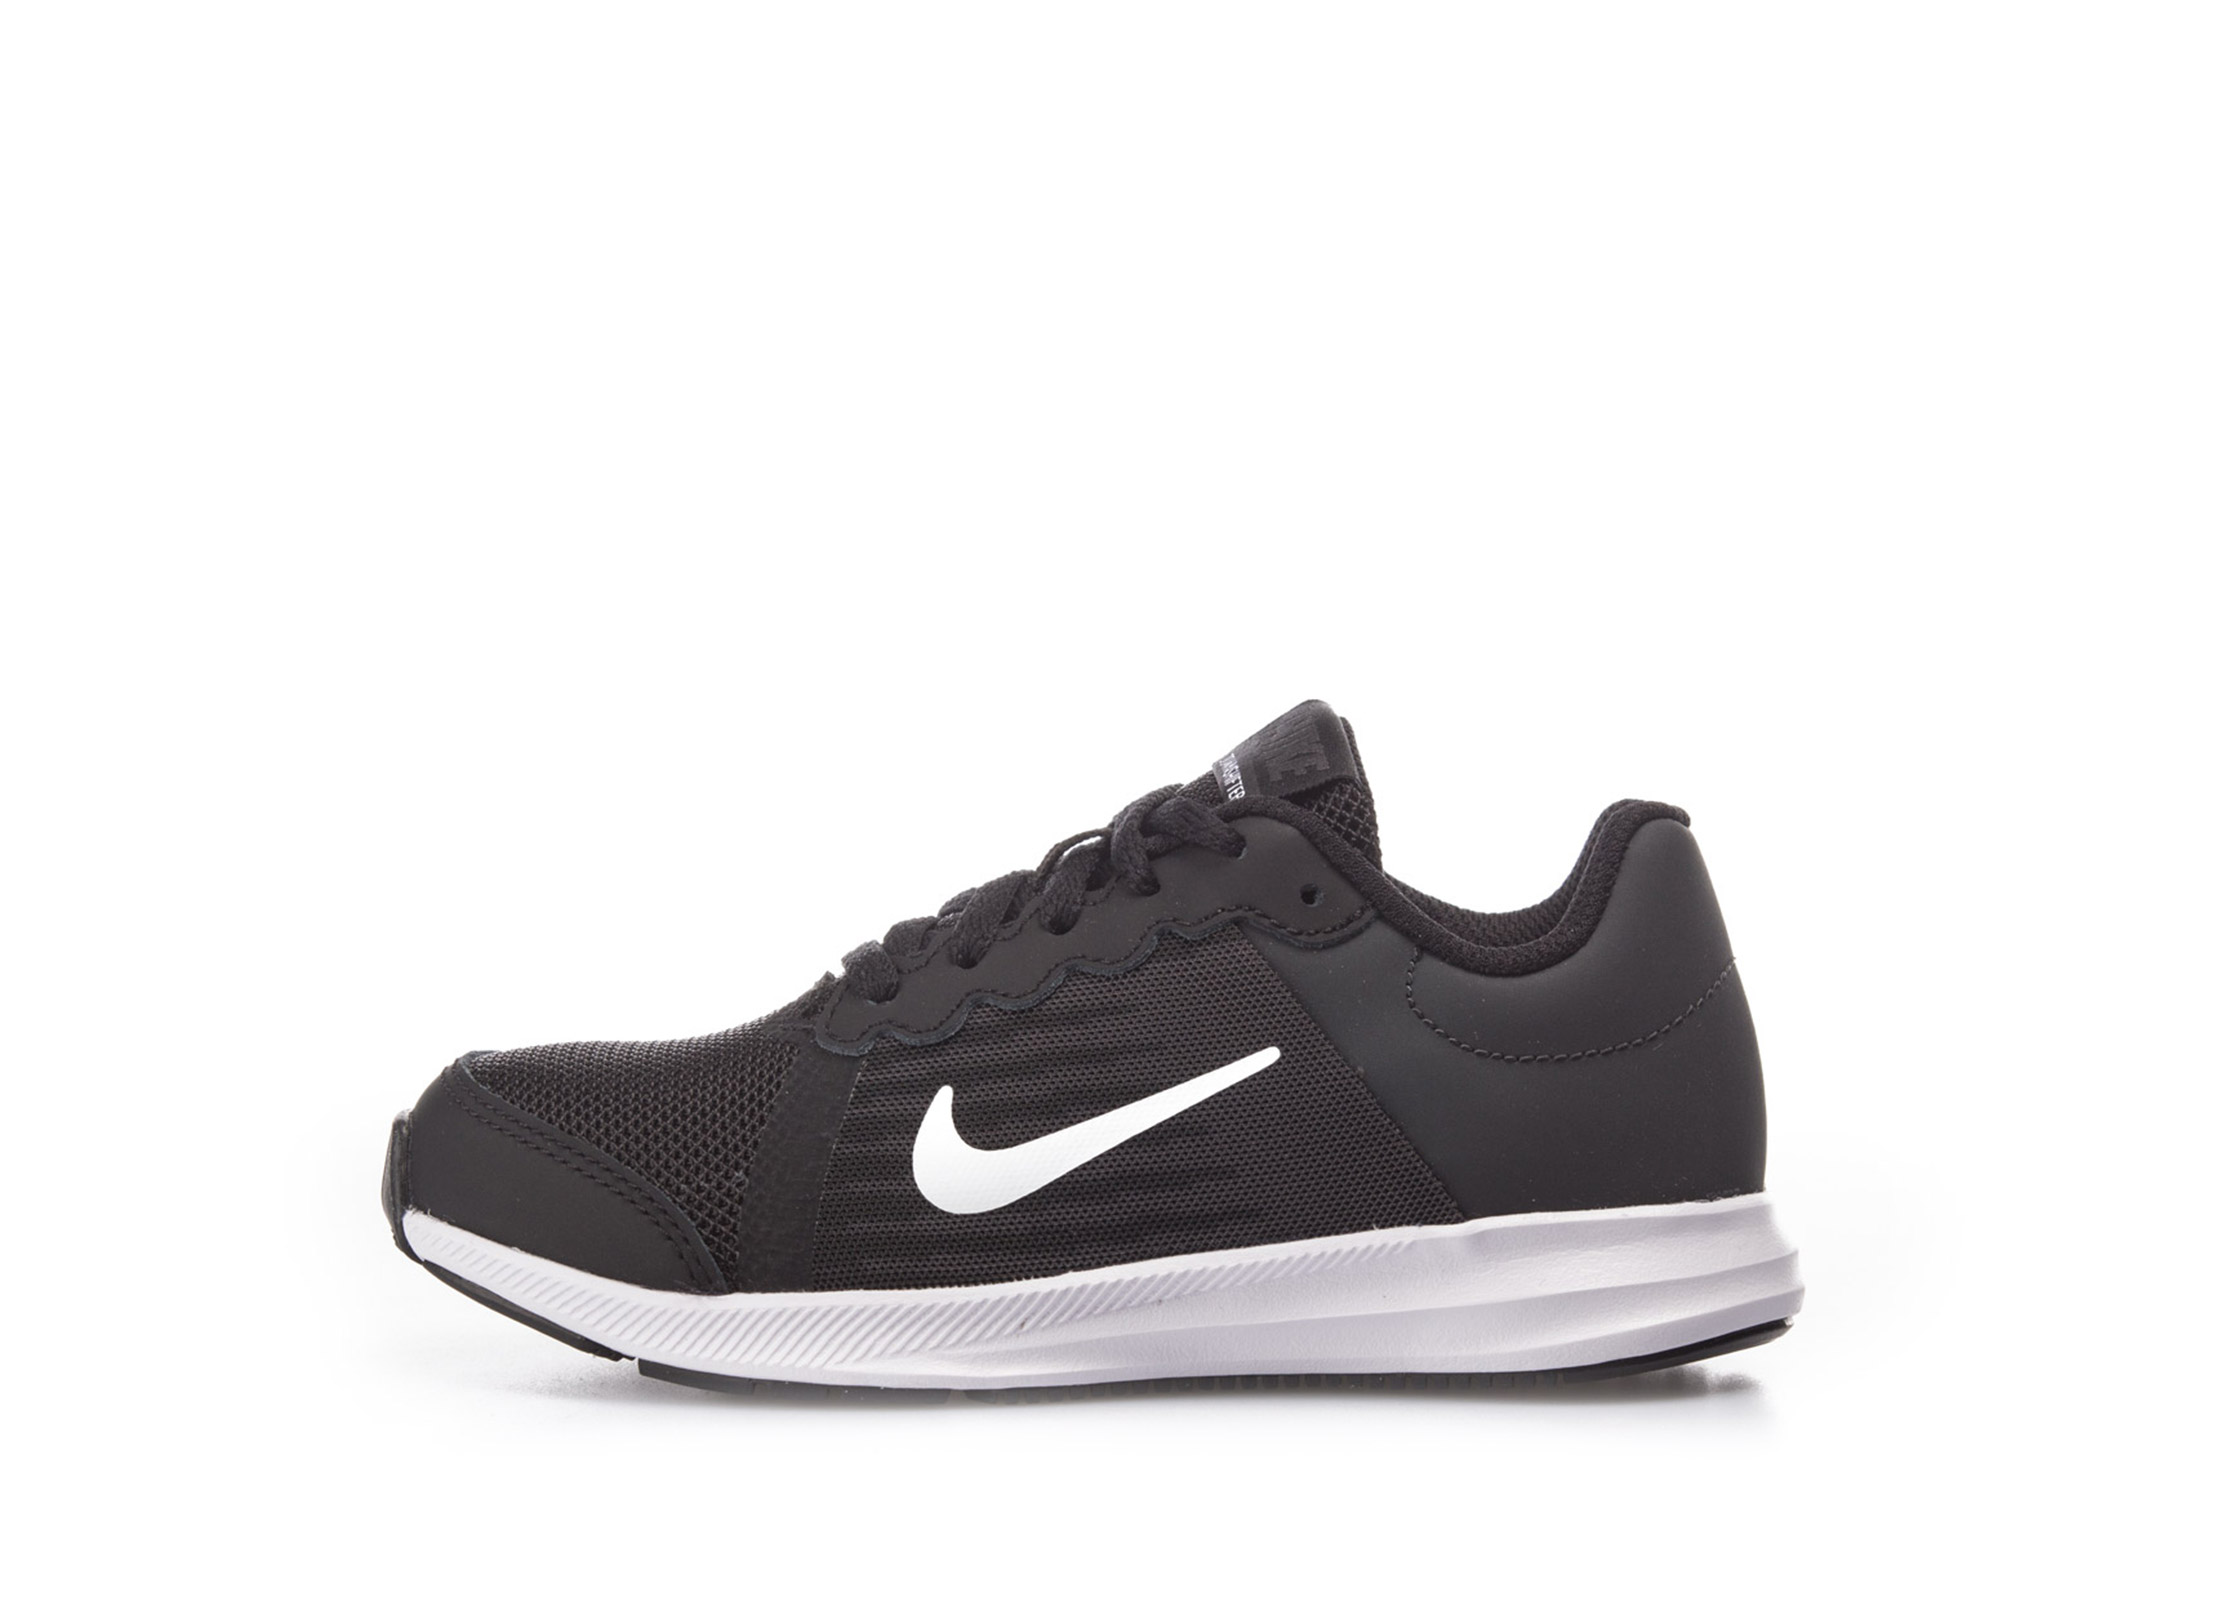 NIKE DOWNSHIFTER PS 922860-001 Μαύρο